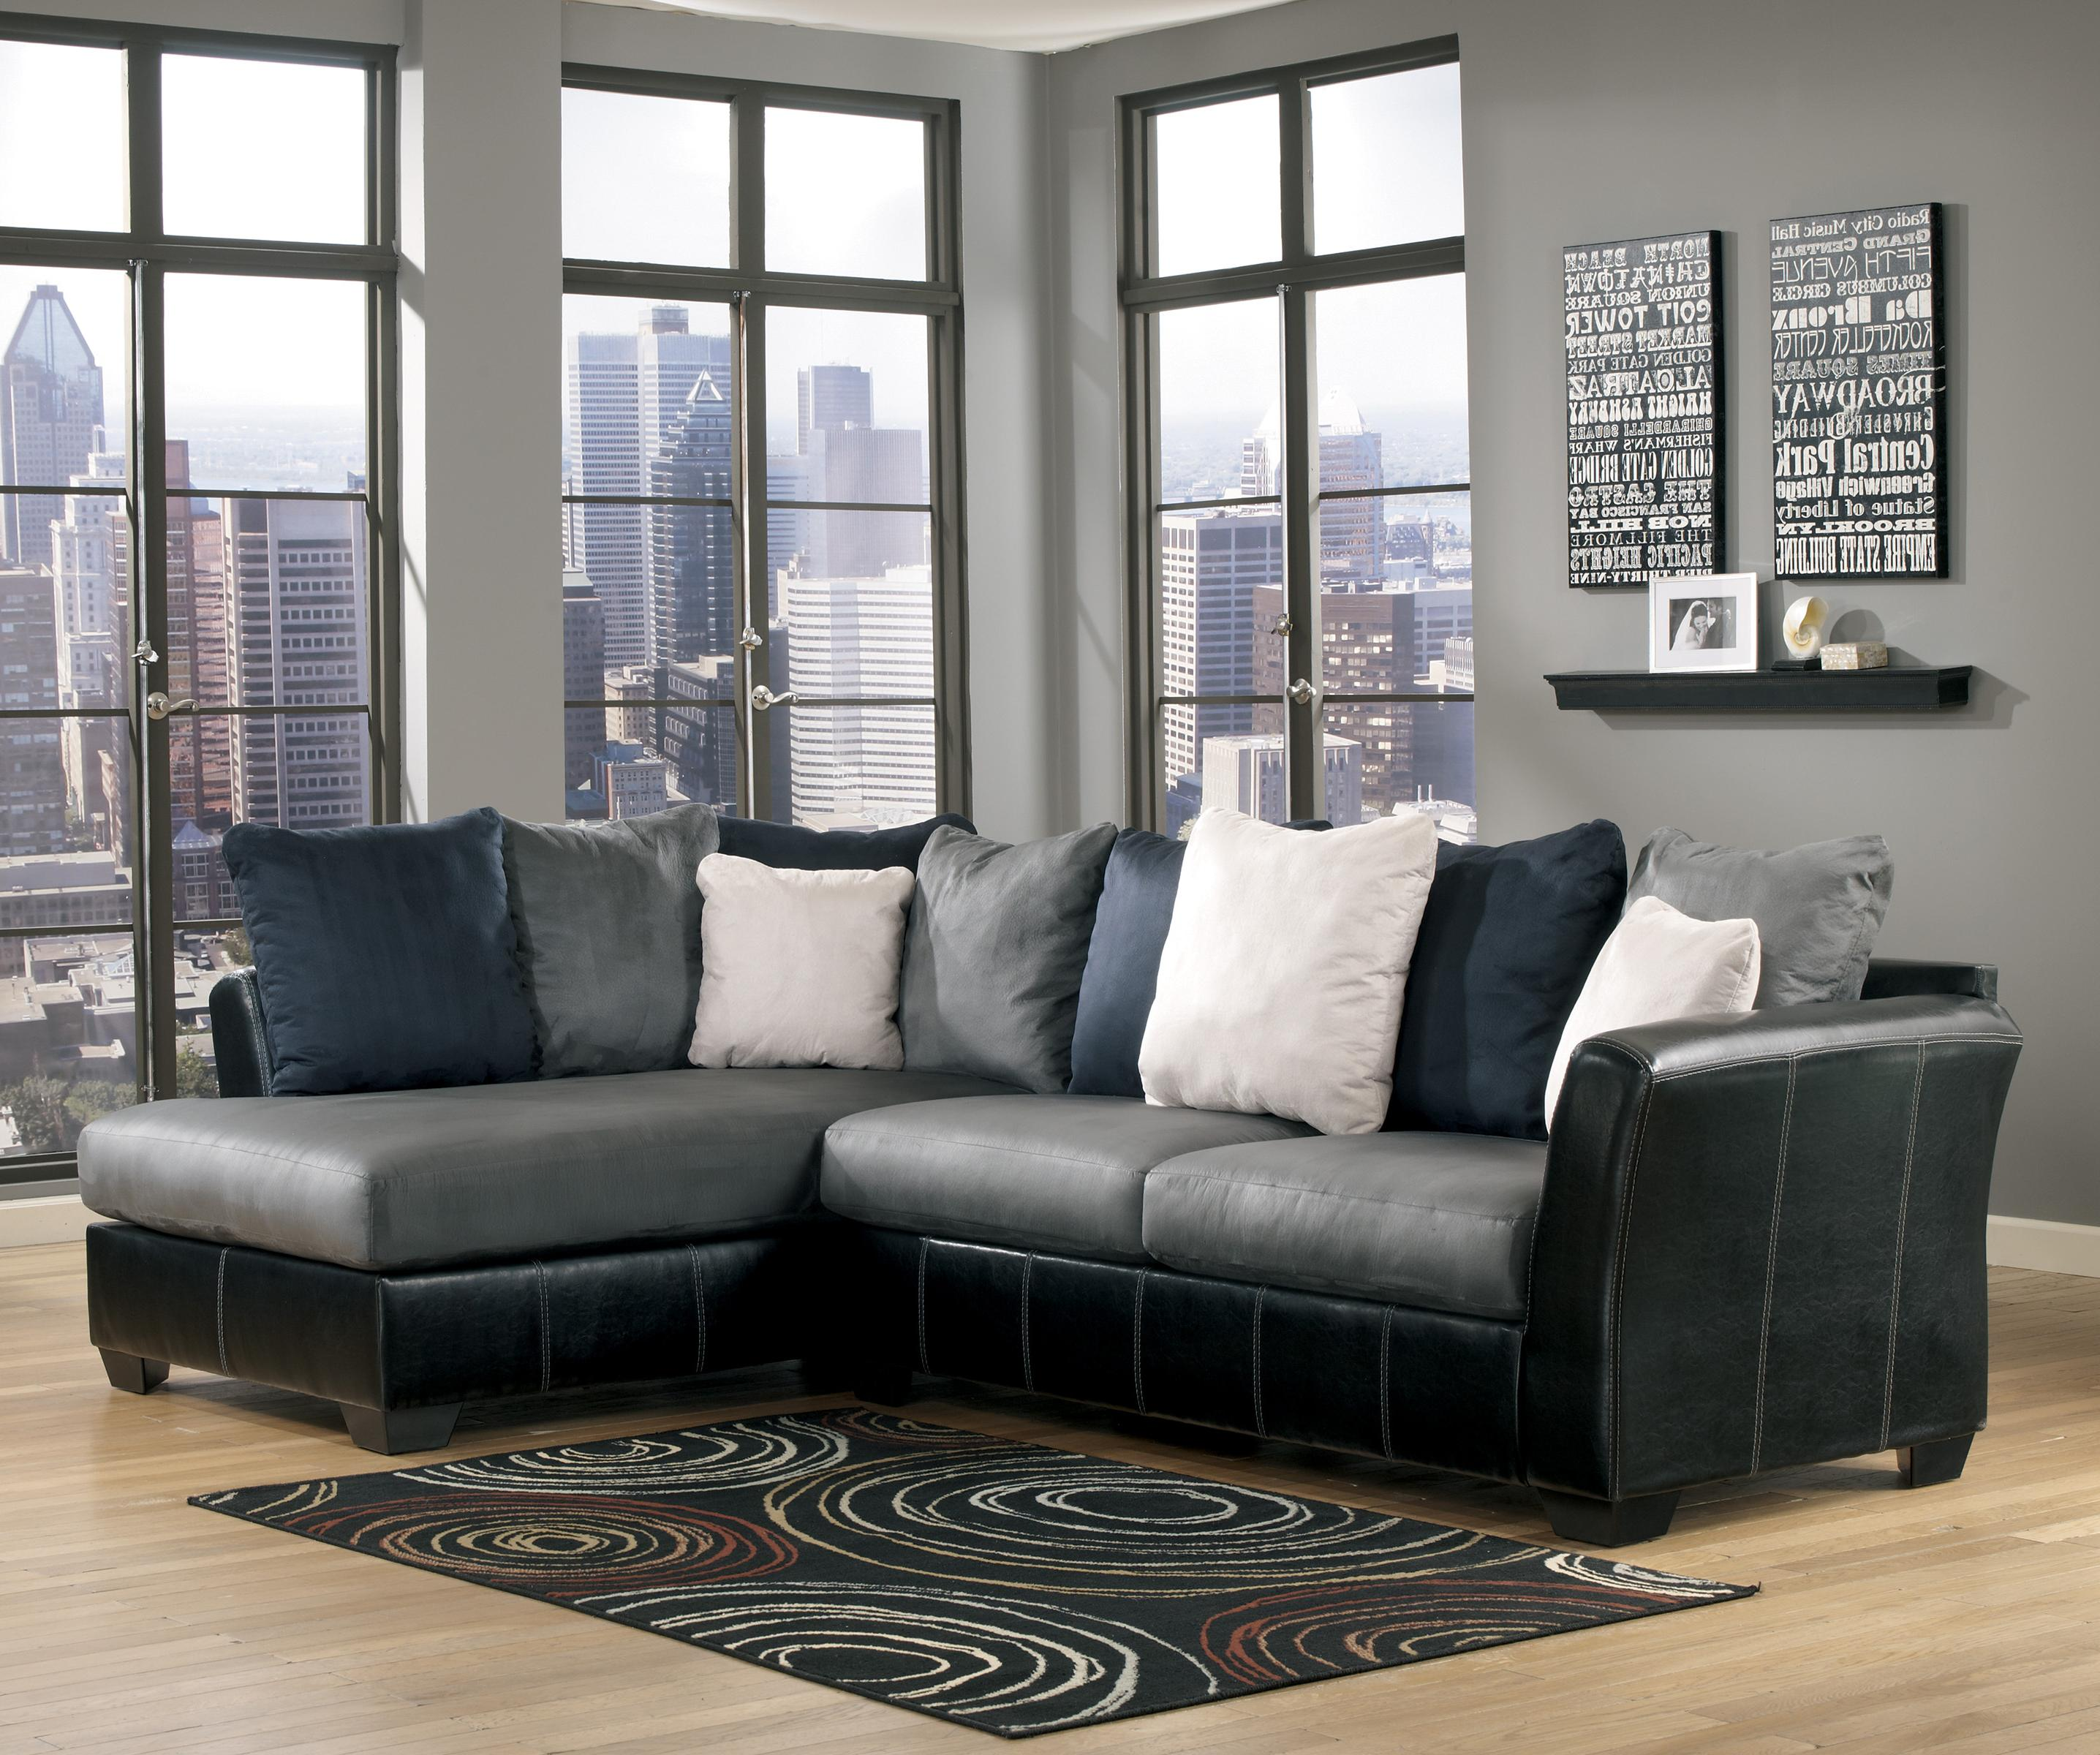 Ashley/Benchcraft Masoli - Cobblestone 2-Piece Sectional with Chaise - Item Number: 1420016+67